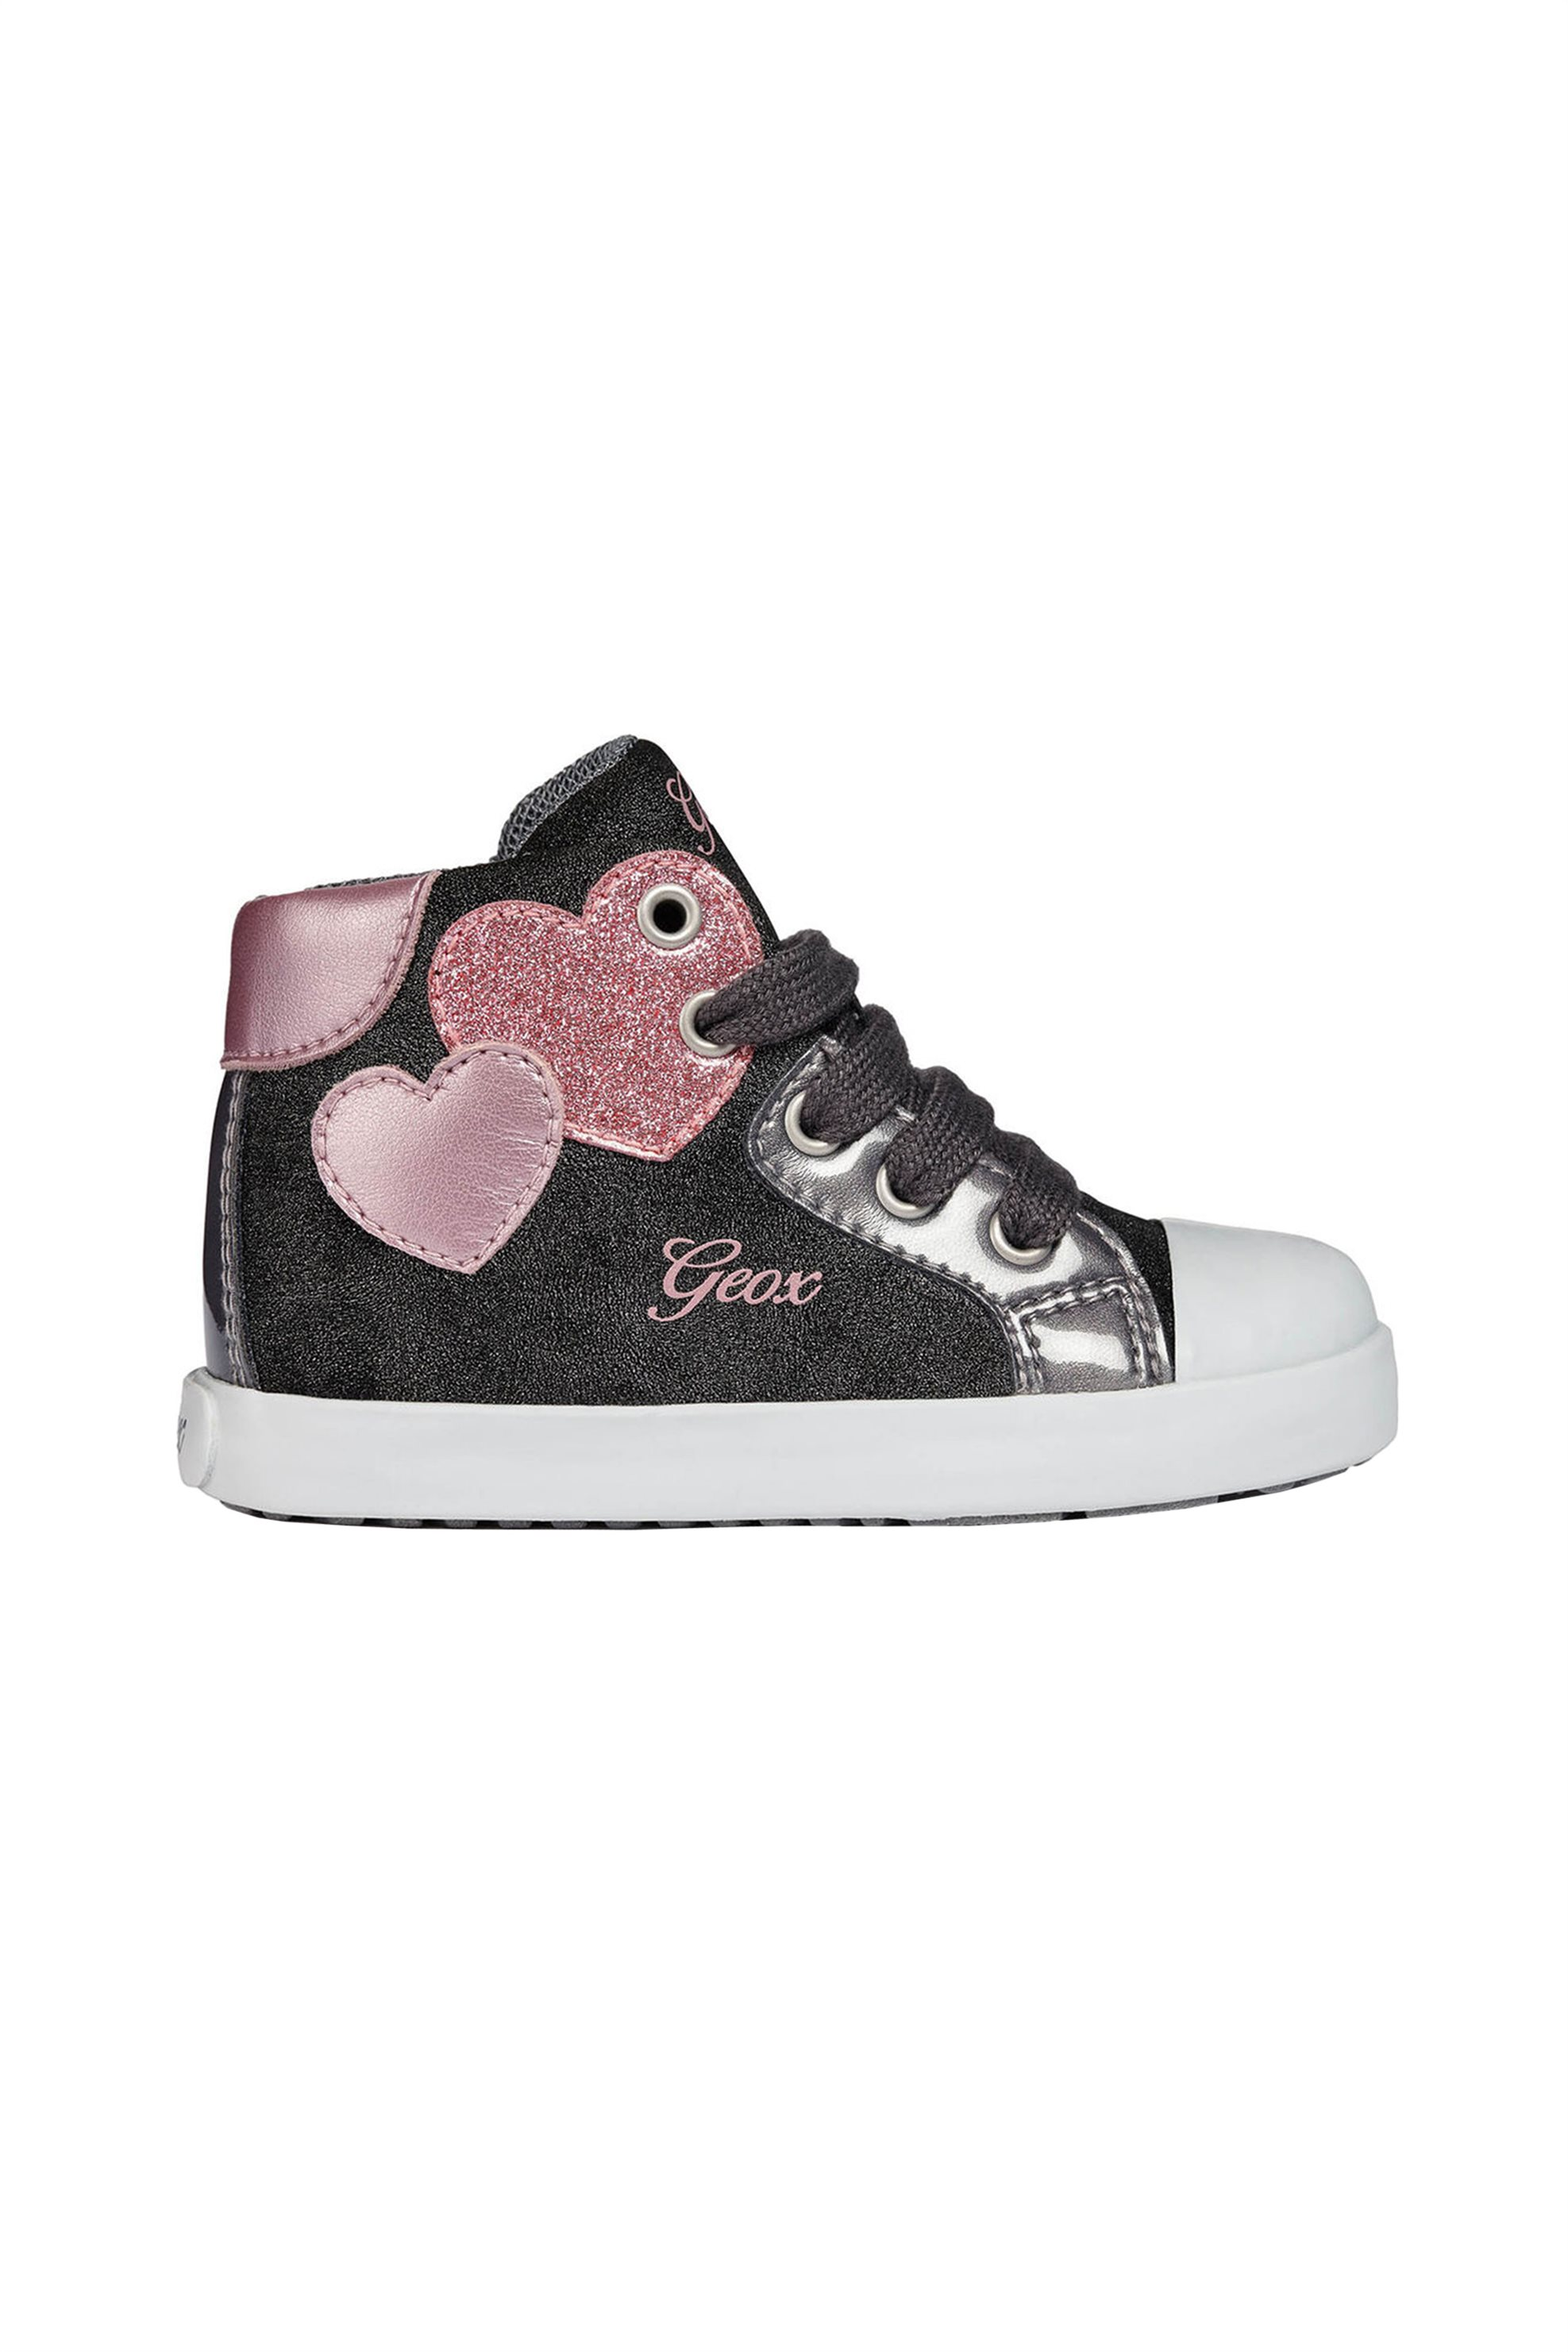 -30% Notos Geox βρεφικά sneakers μποτάκια Baby Kilwi Girl – B84D5C-1 – Μαύρο bf828fd8a01